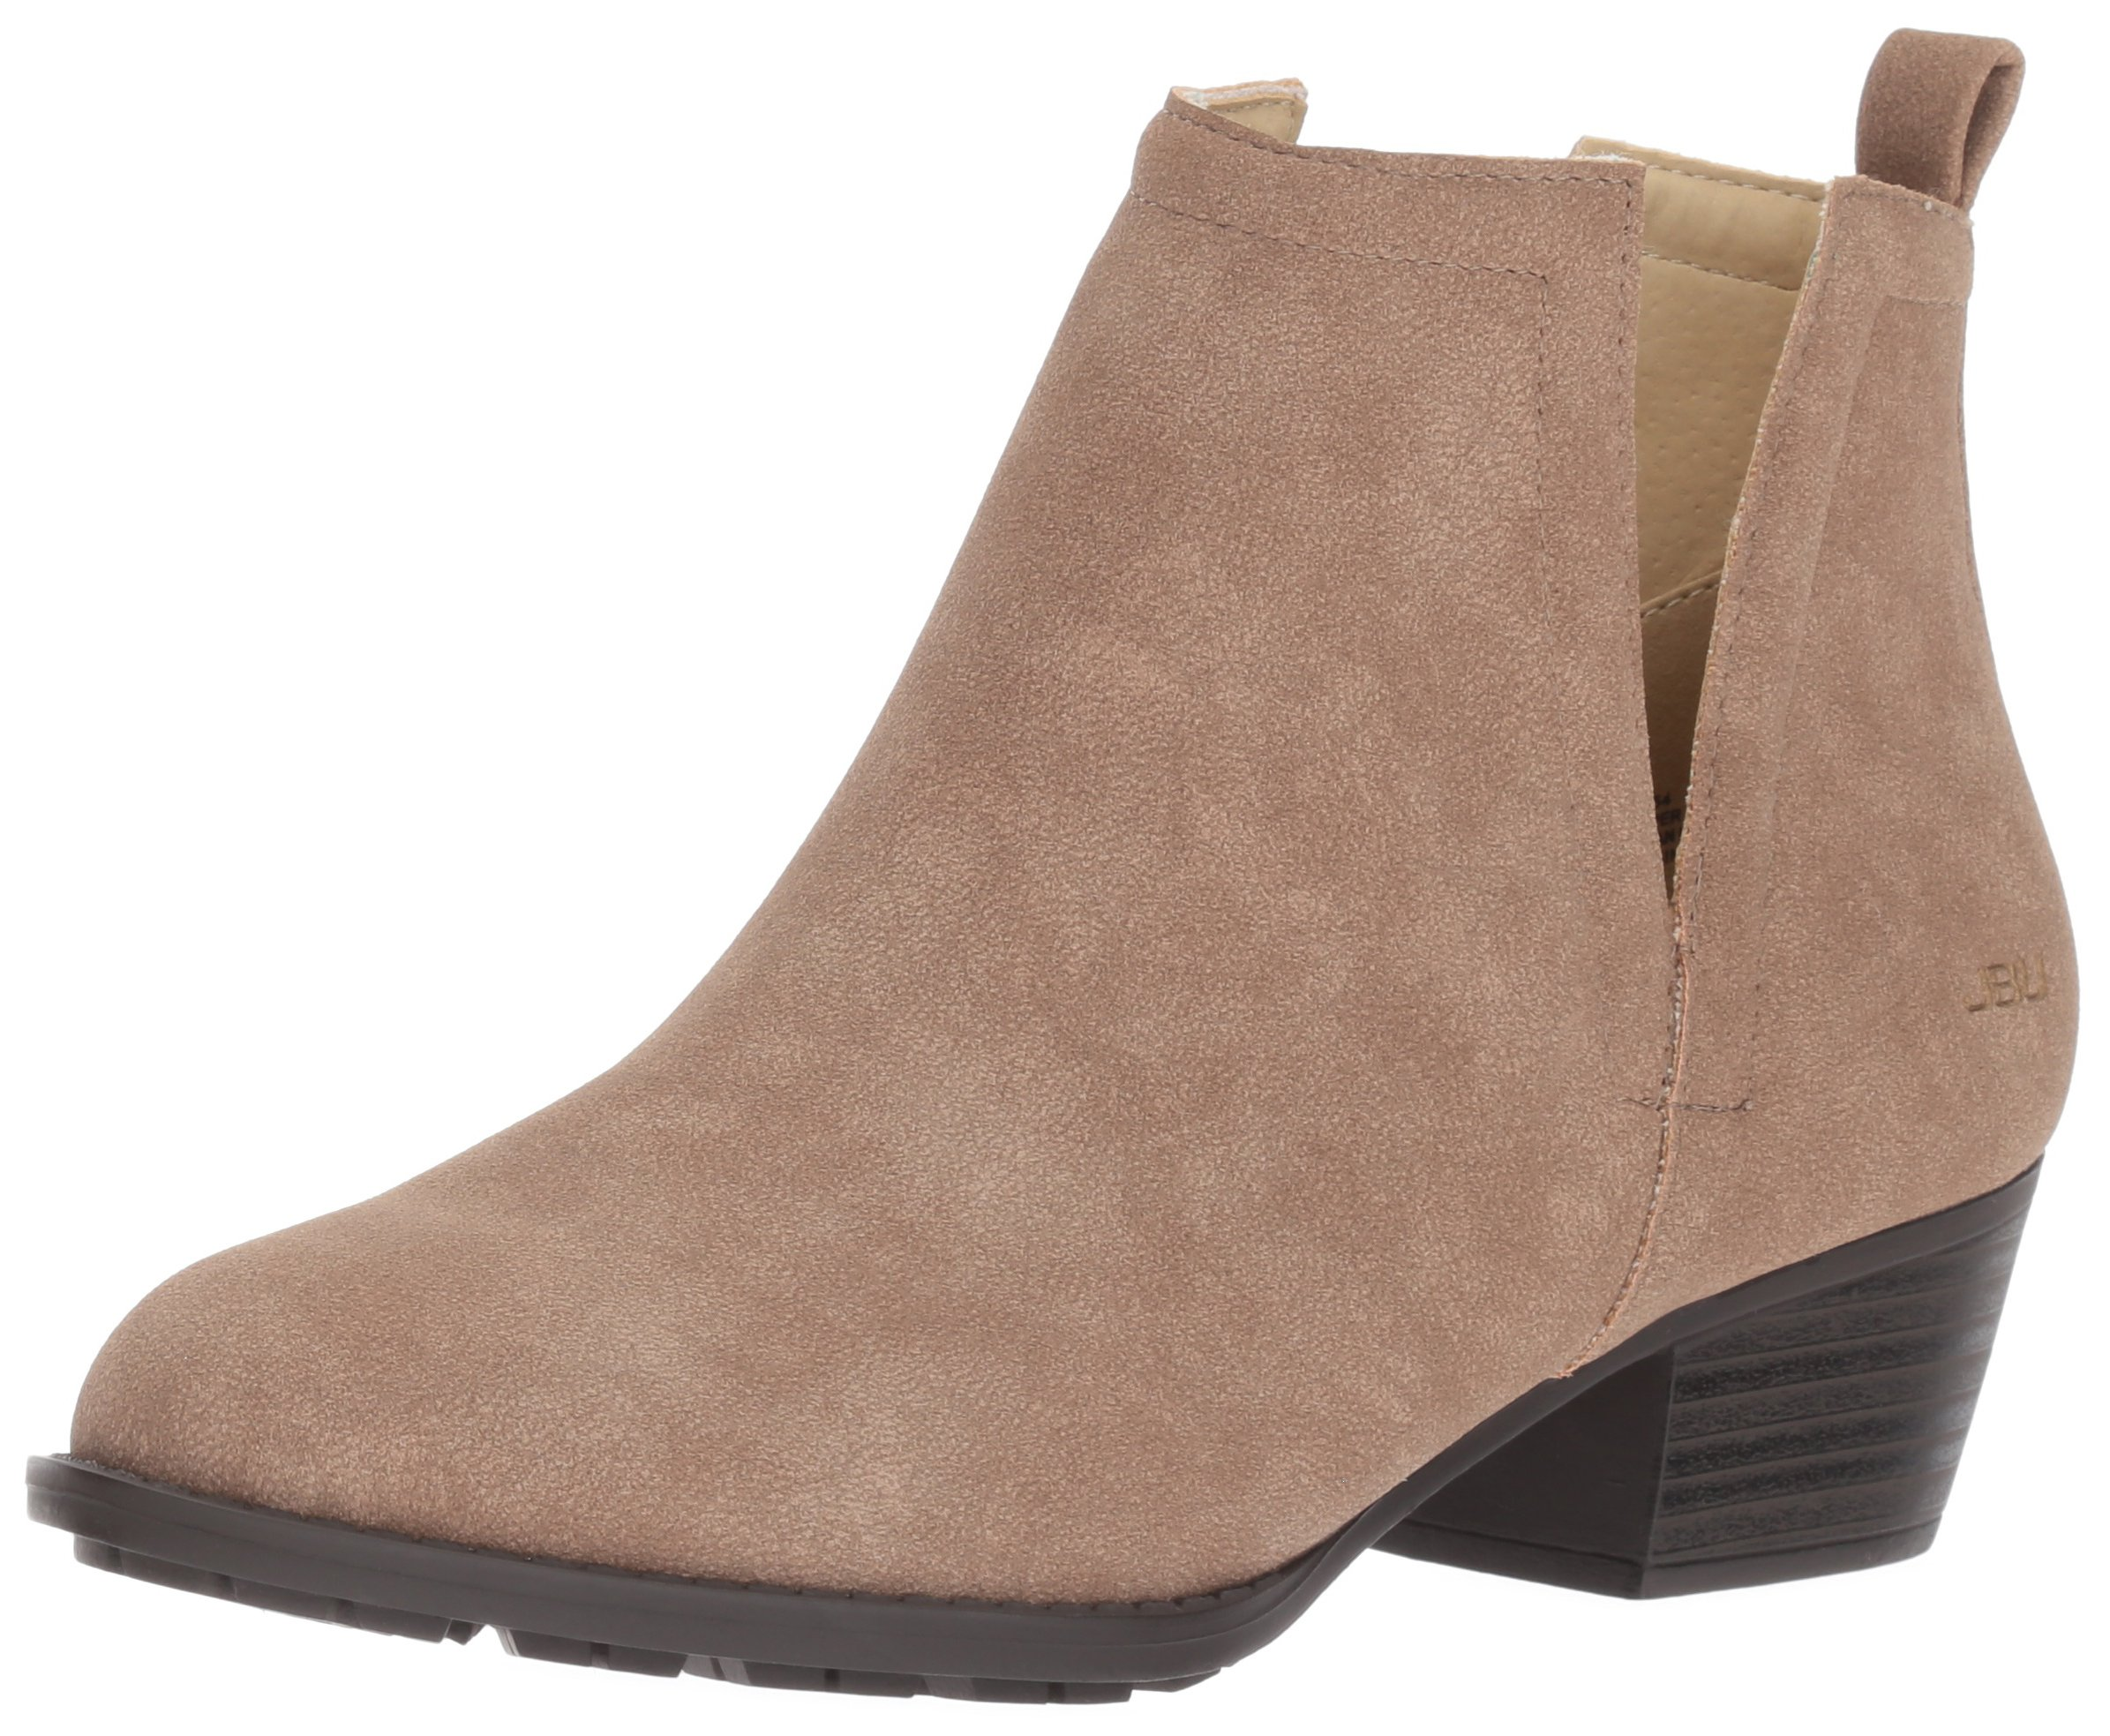 JBU by Jambu Women's Parker Ankle Bootie, Taupe, 9.5 M US